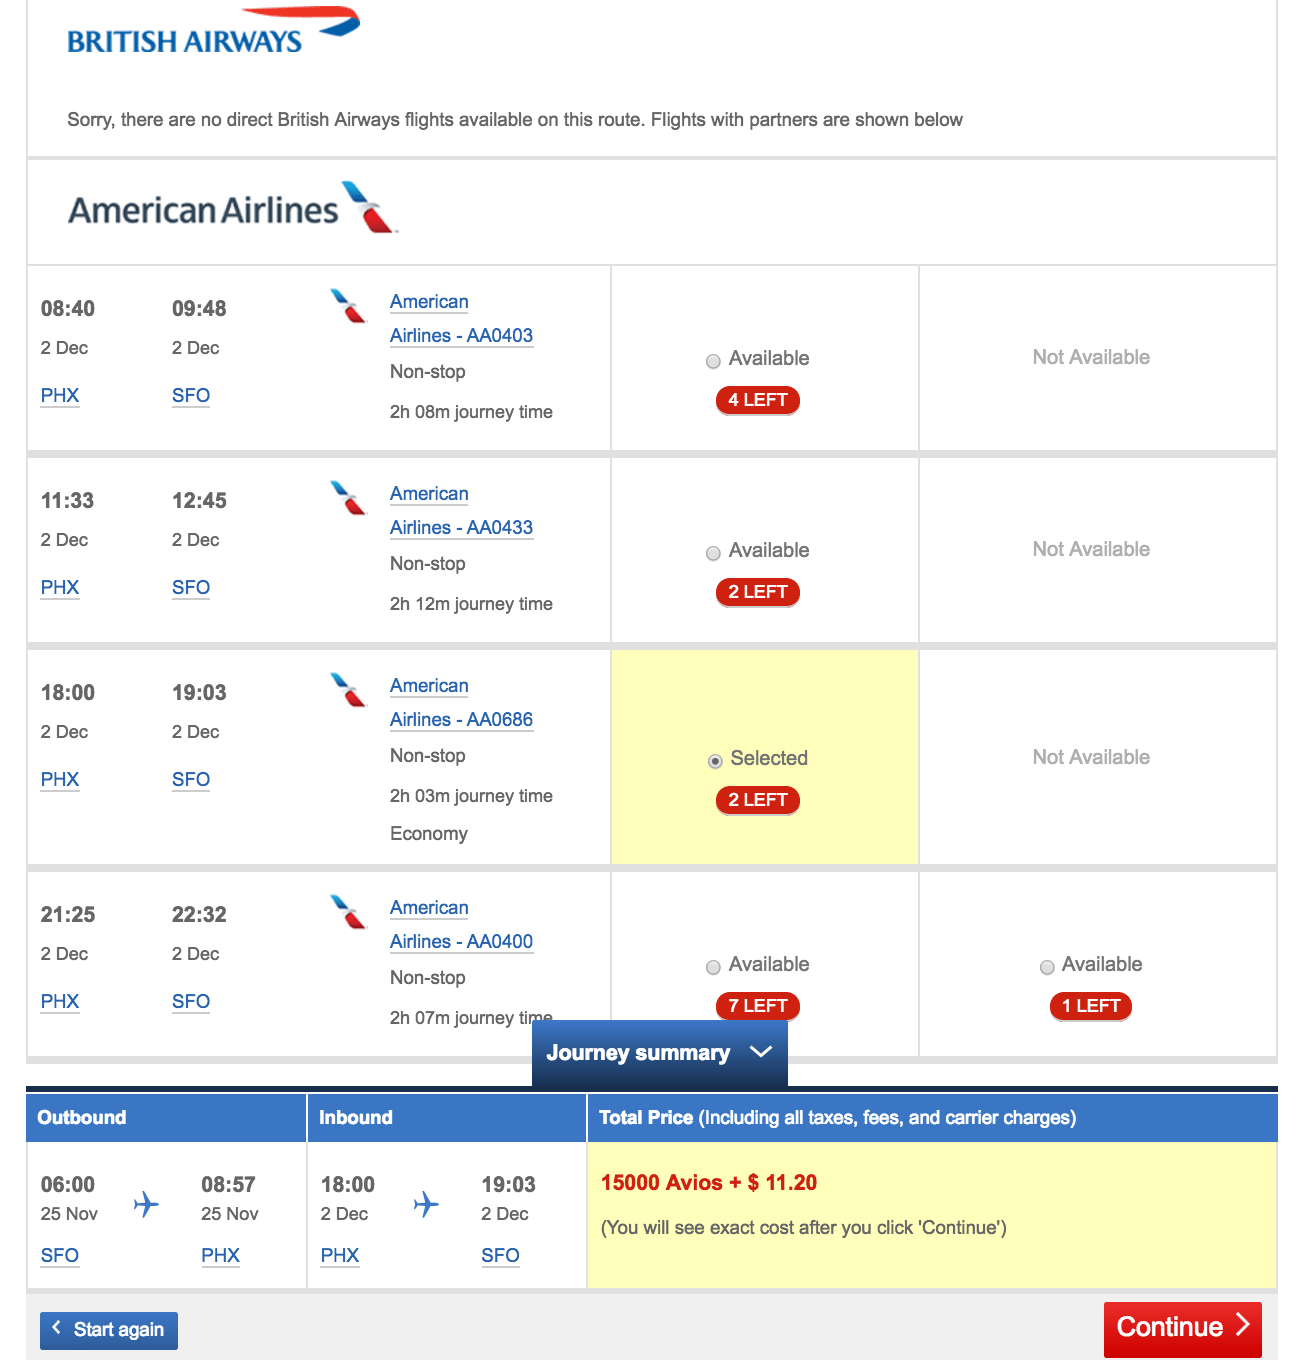 How Do I Use British Airways Avios To Book American